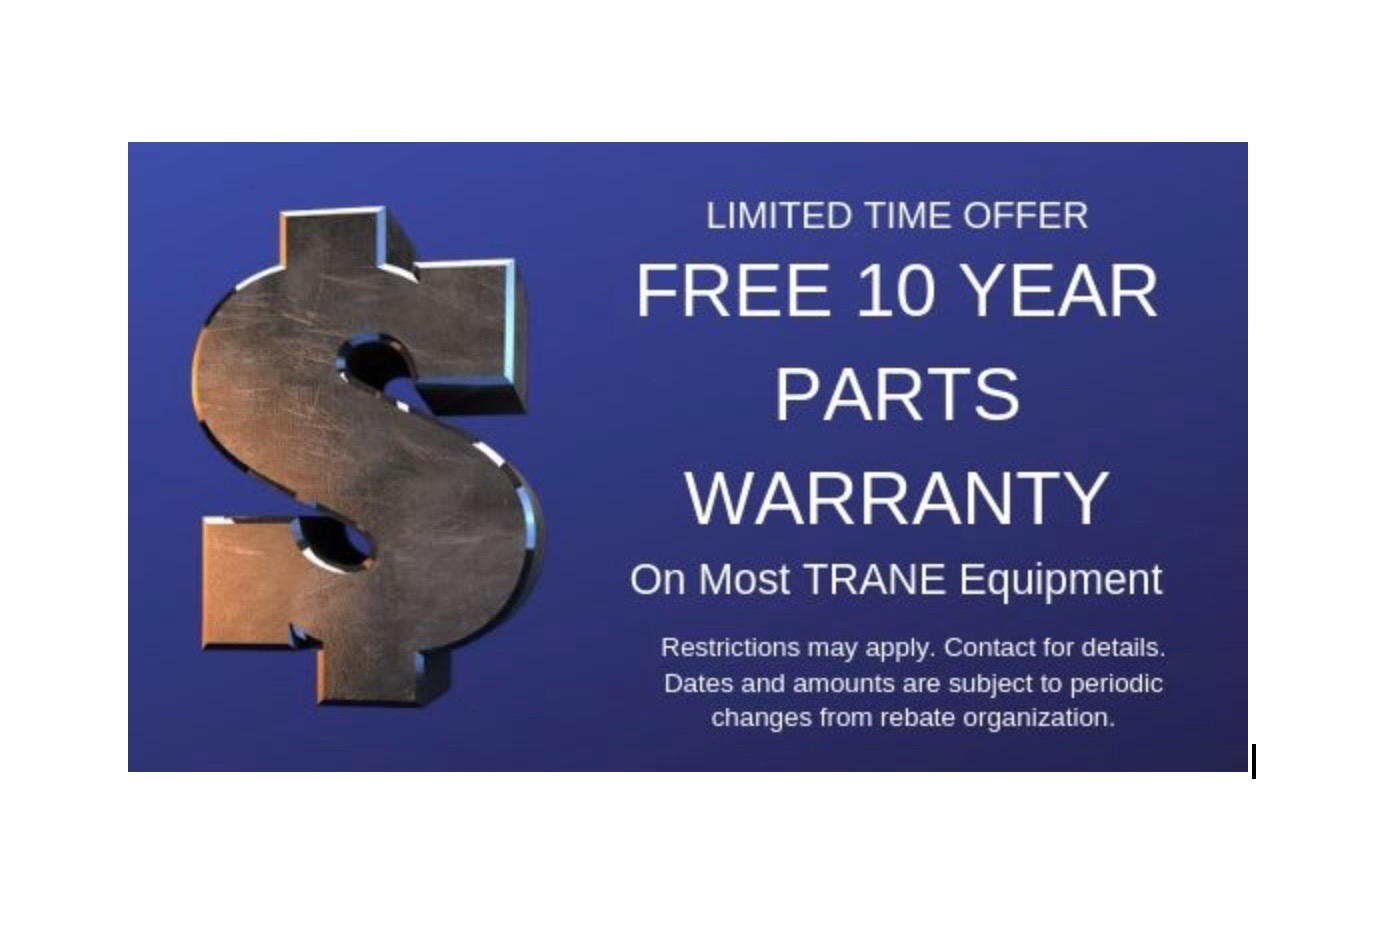 FREE Warranty - FREE 10 Year Parts Warranty On Most TRANE Equipment. Limited Time Offer.Restrictions may apply. Contact for details. Dates and amounts are subject to periodic changes from rebate organization.